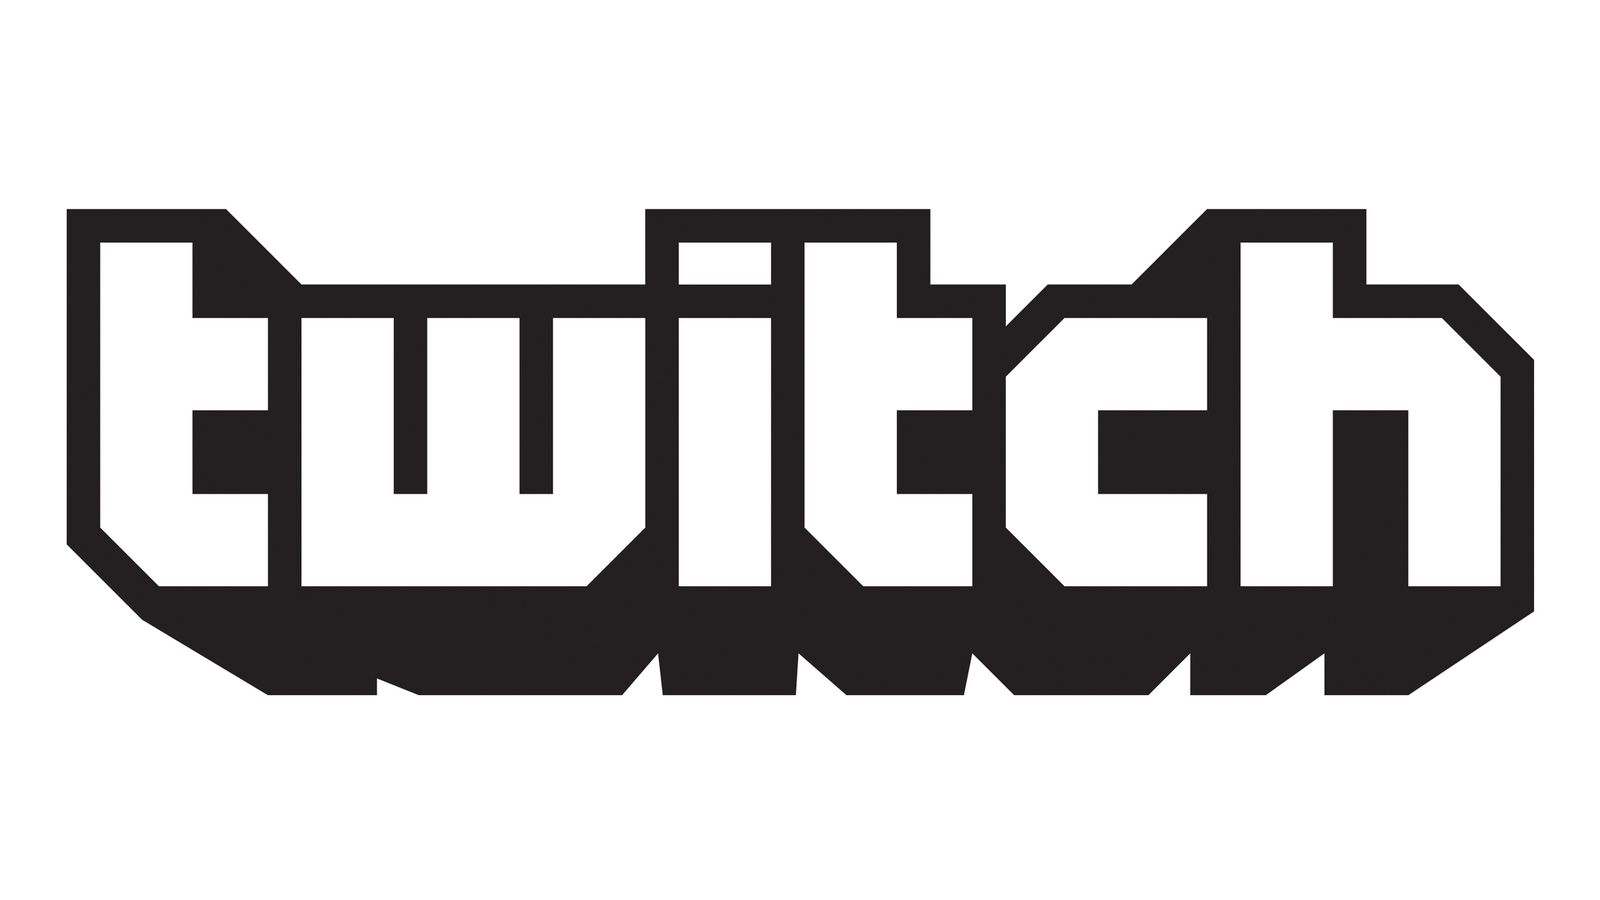 twitch tries out live concerts with free house music